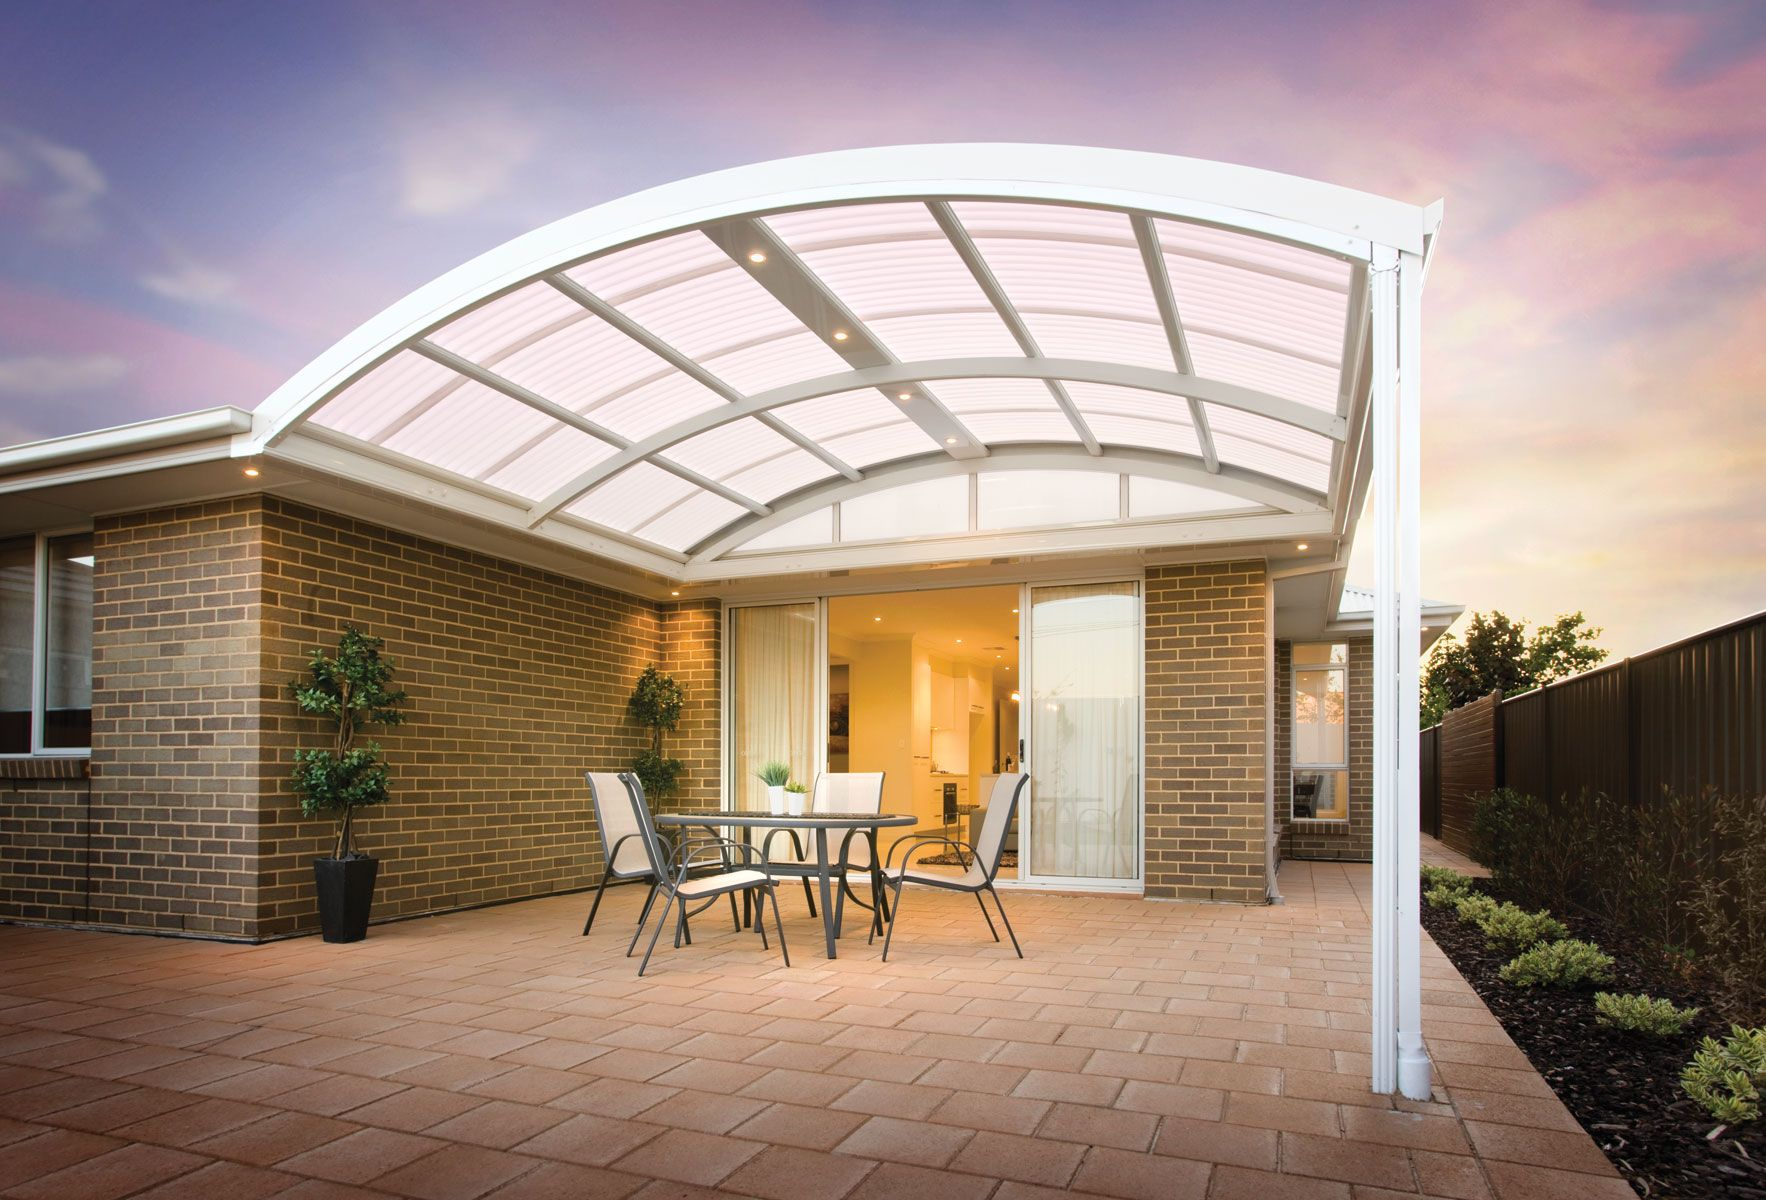 Best The Stratco Outback Curved Roof Patio Is A Unique Sleek 400 x 300